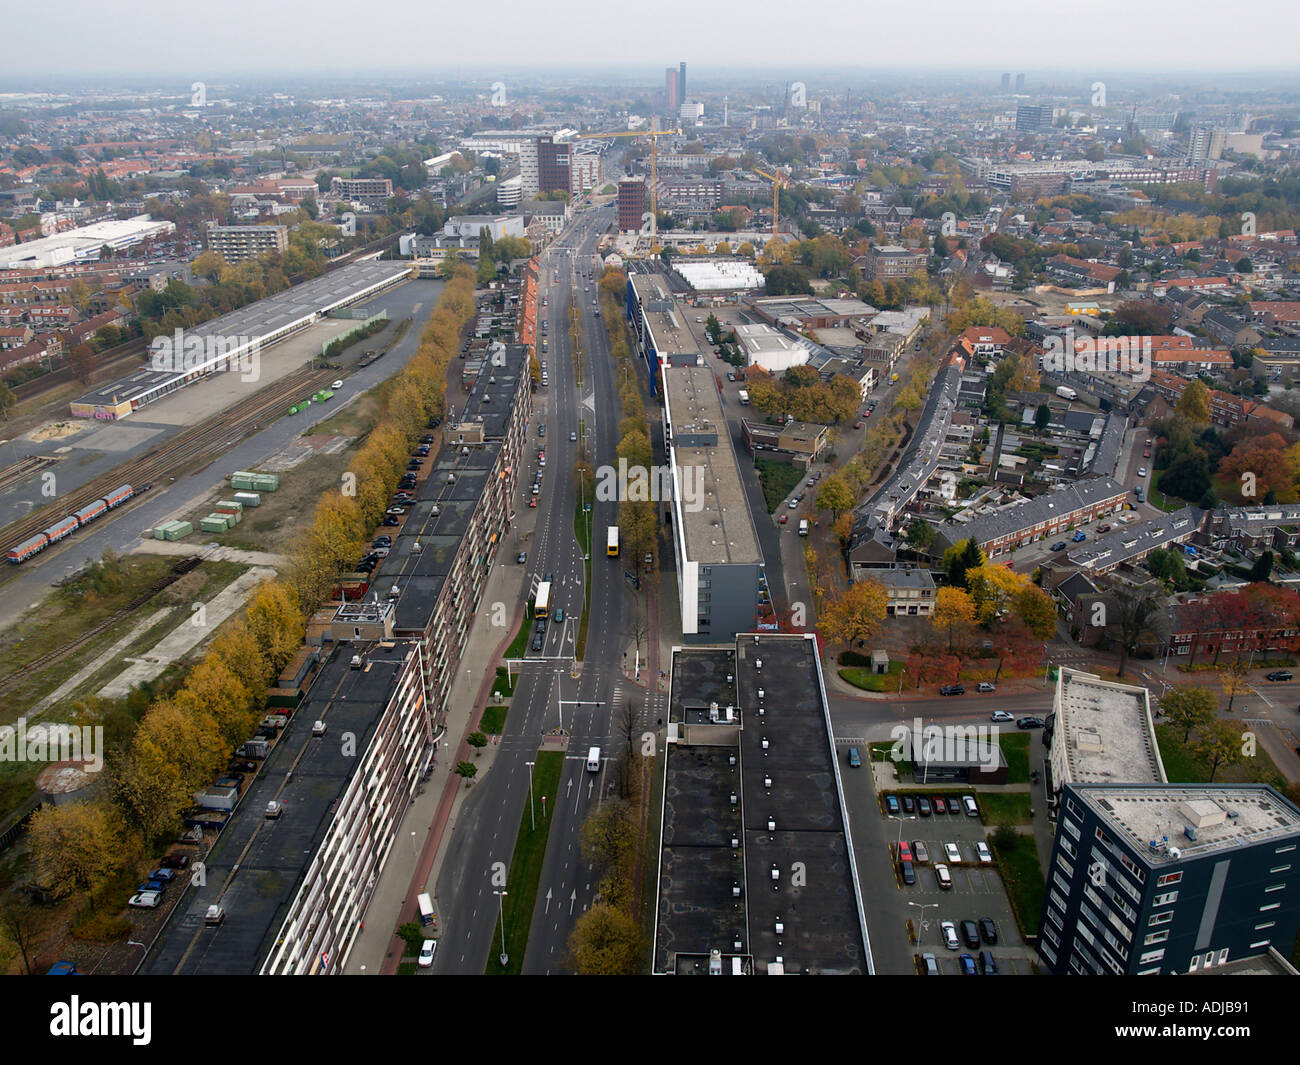 Tilburg a medium sized Dutch city seen from the sky looking towards the city centre - Stock Image